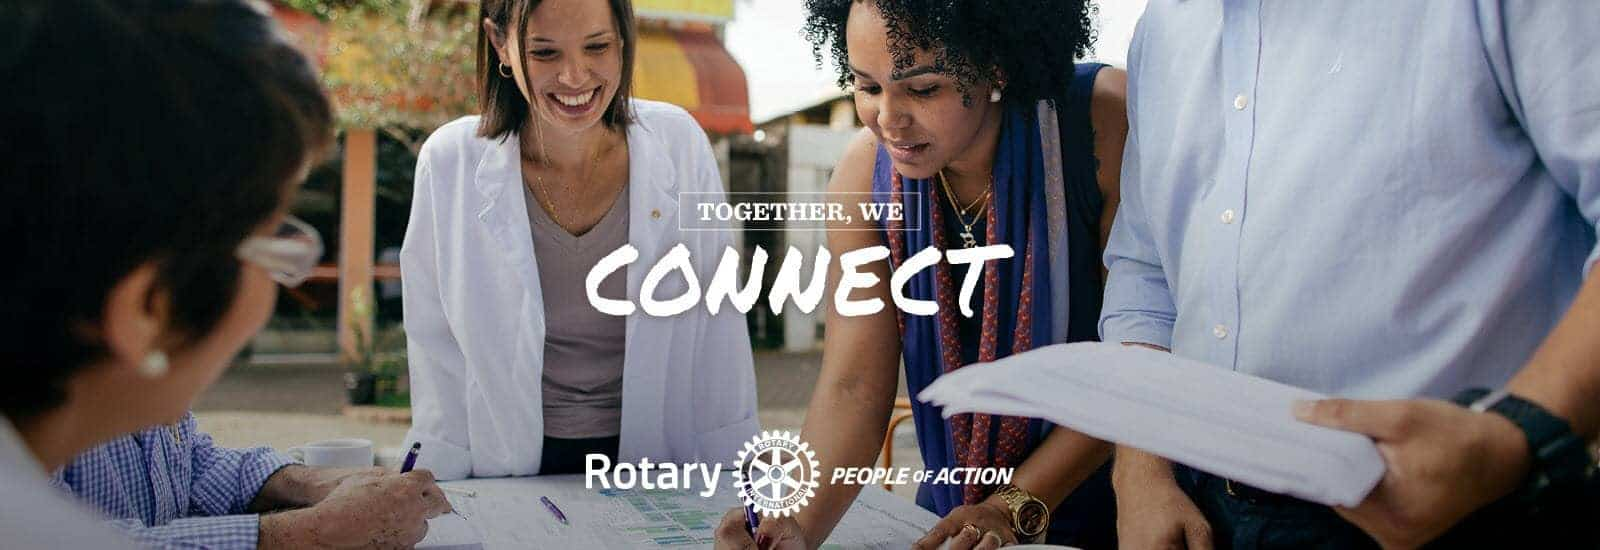 Rotary Club of Safety Harbor Banner